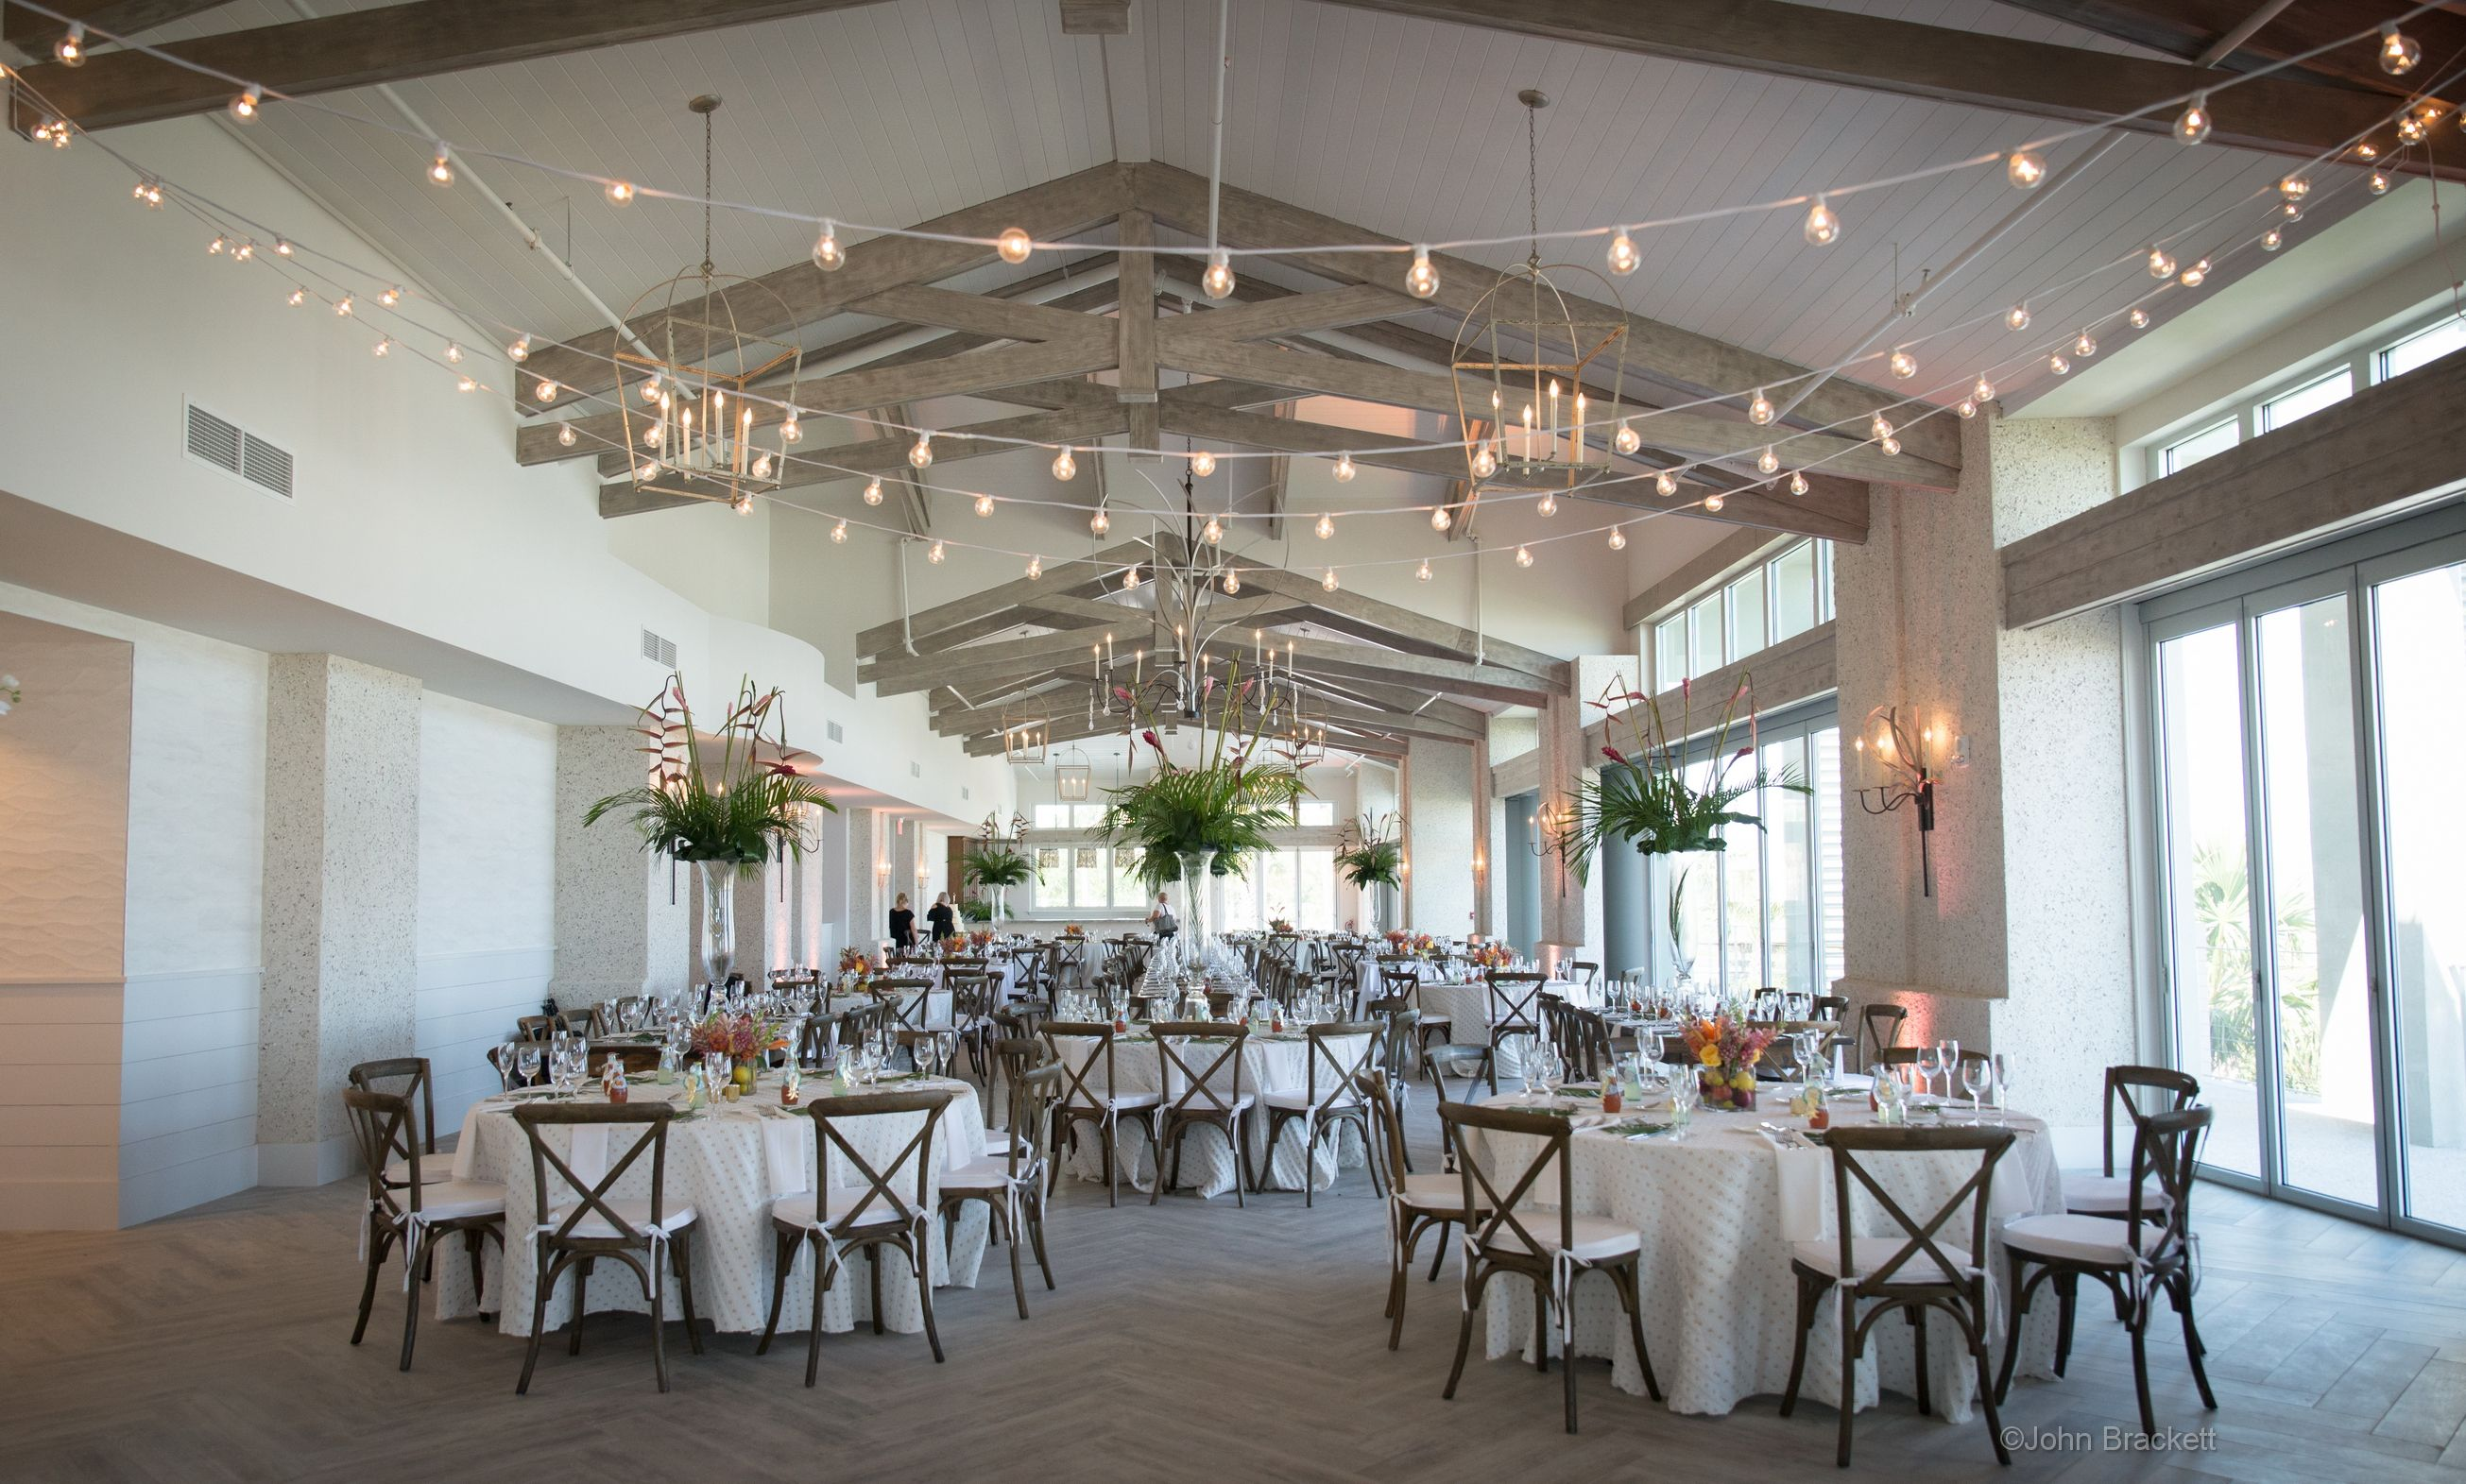 Even Cafe Lights Look Great In Our New Oceanfront Wedding Venue The Grand Ocean Terrace Hilton Head Island Resorts Hilton Head Wedding Hilton Head Island